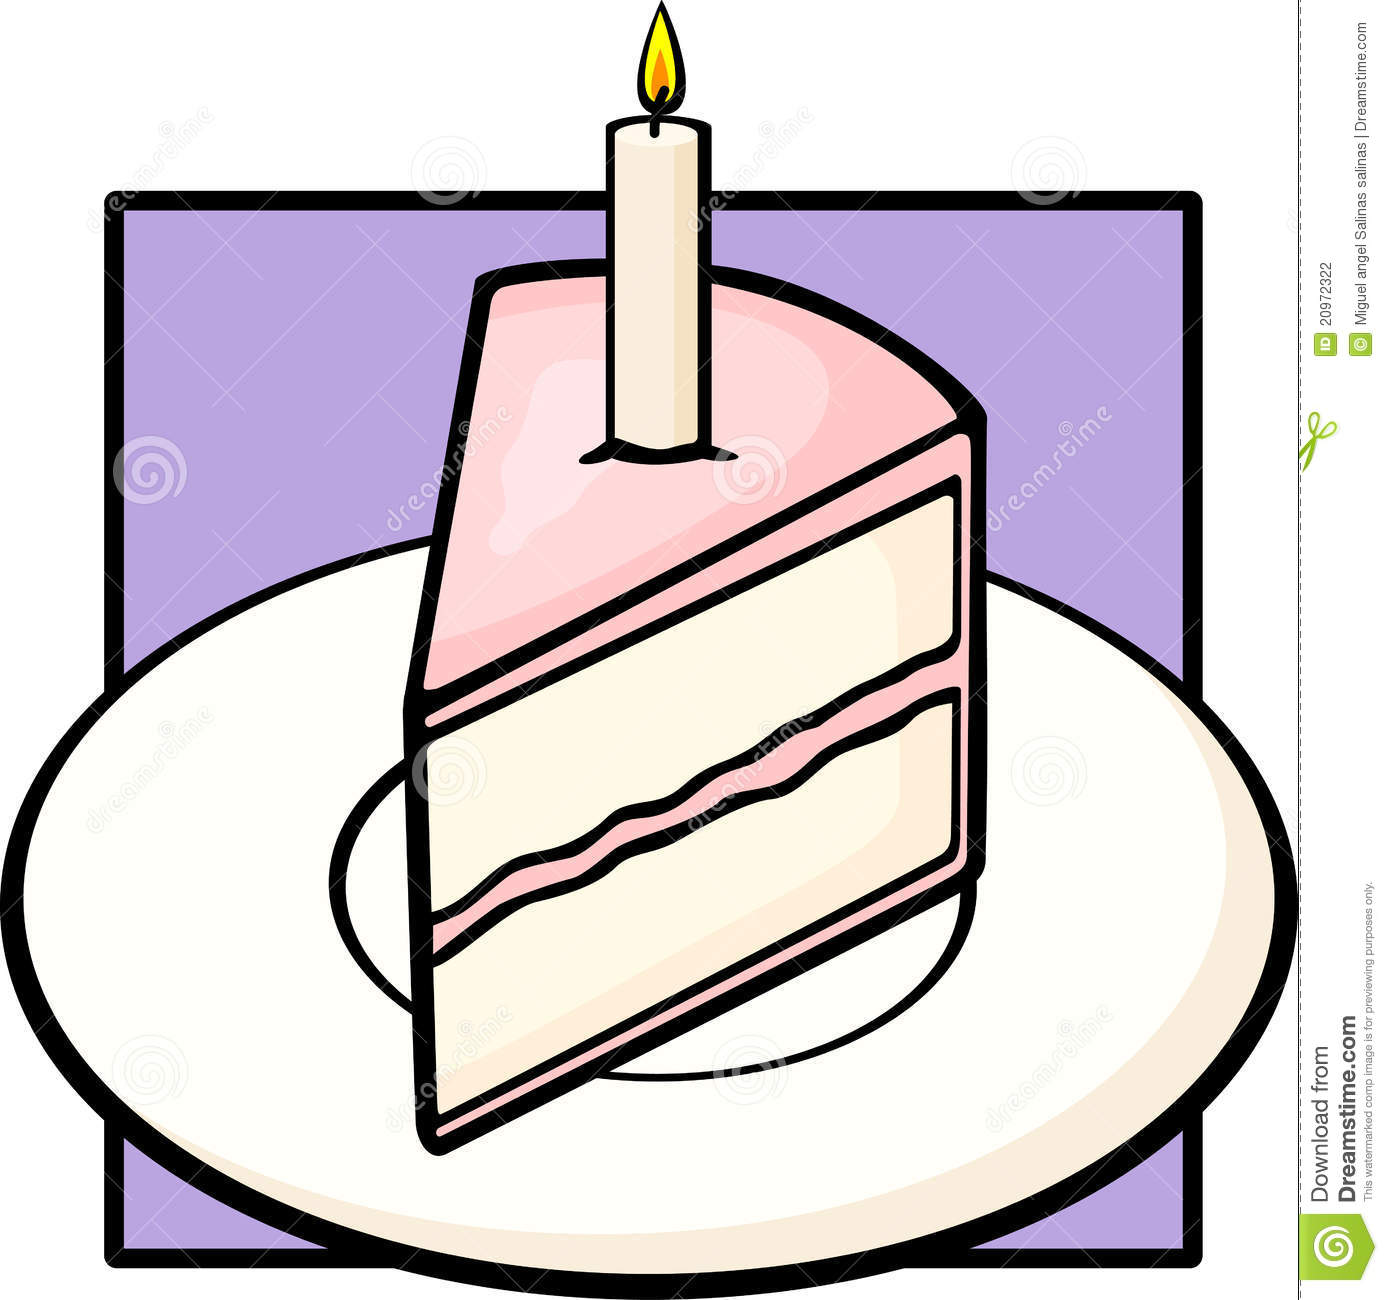 Cake Slice Clipart | Free download best Cake Slice Clipart on ... for Drawing Cake Slice  174mzq